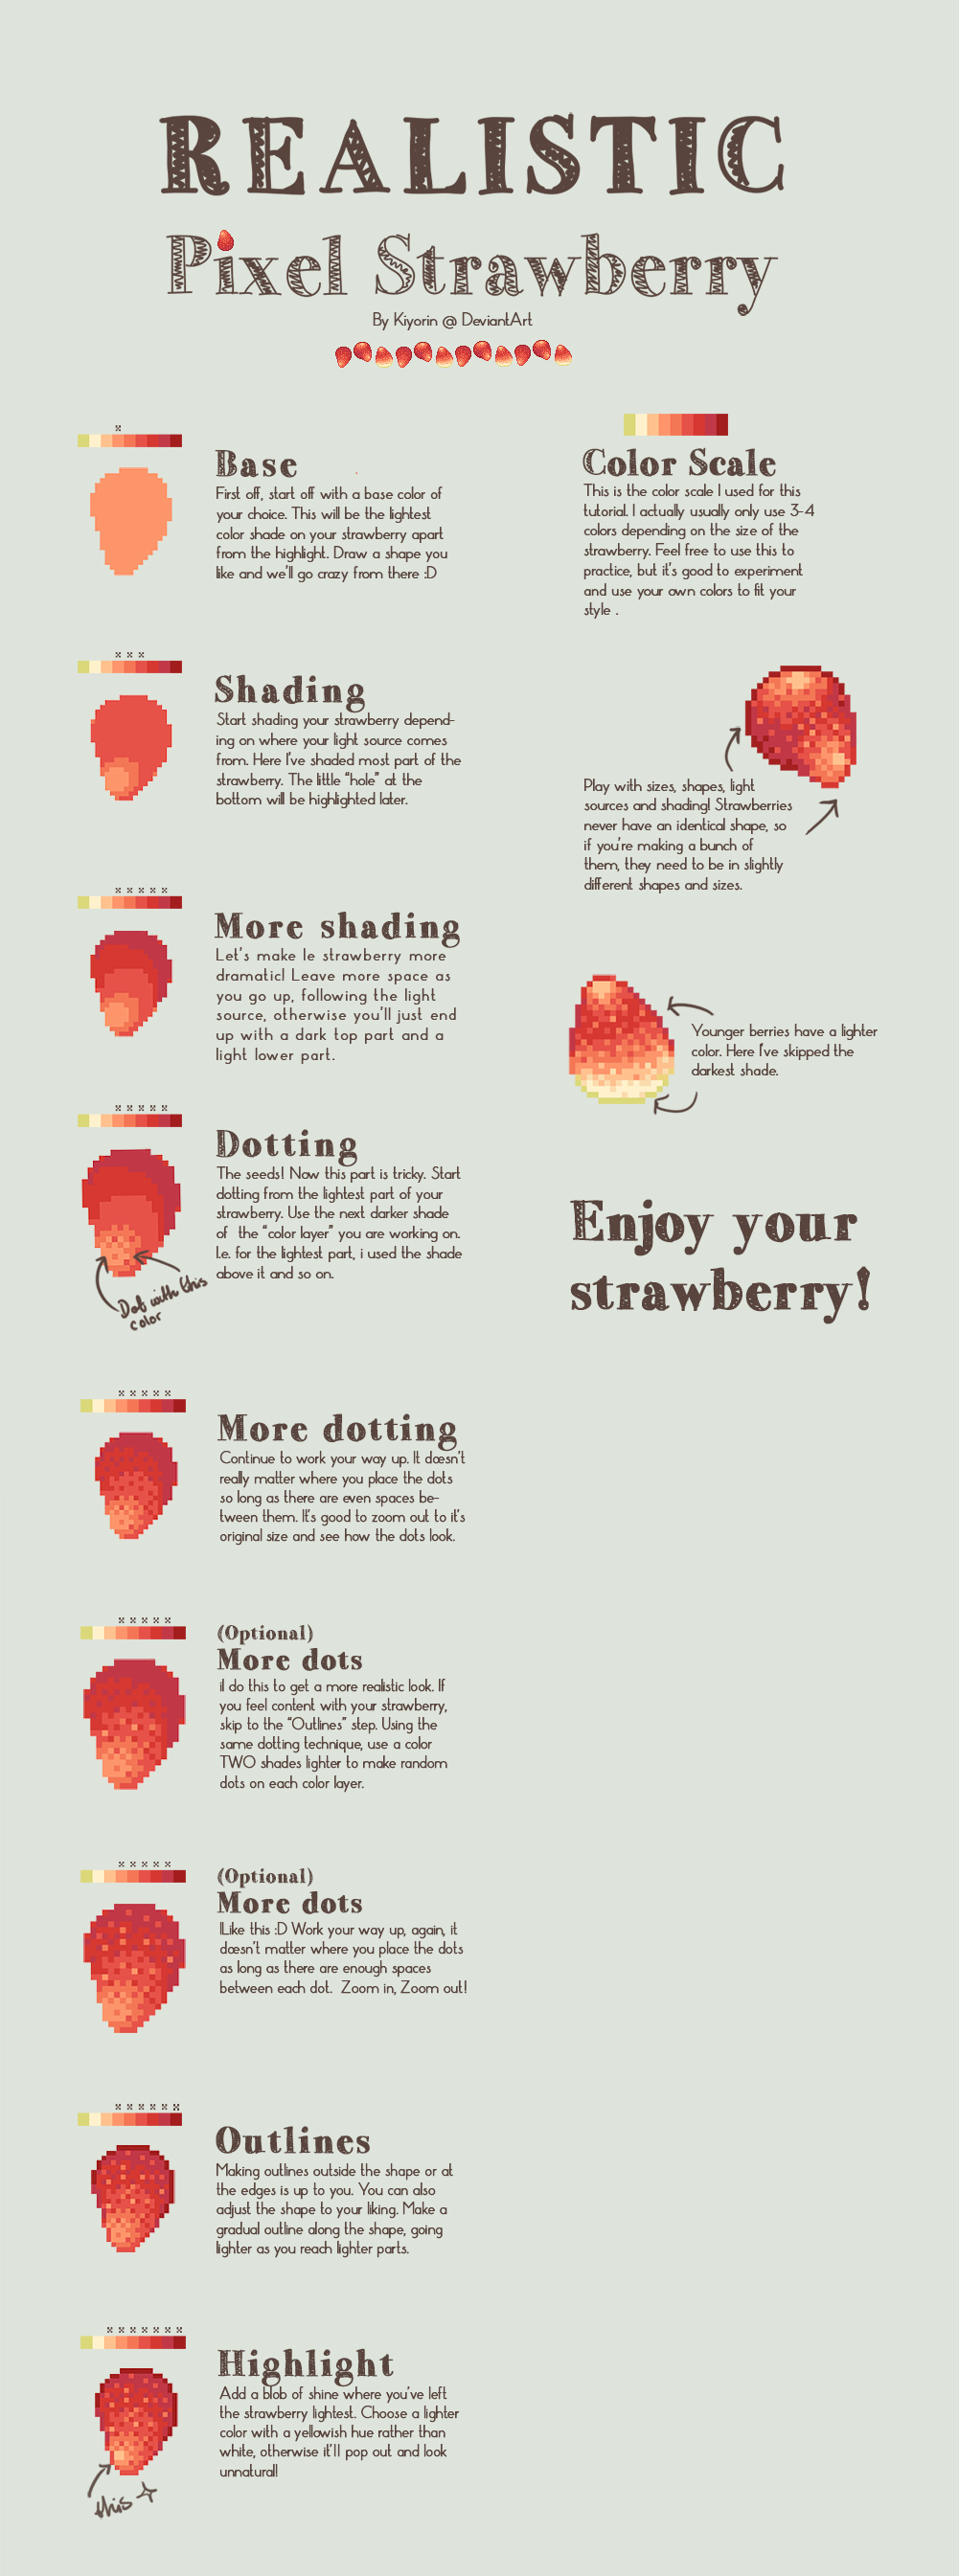 Realistic Pixel Strawberry tutorial by Kiyorin